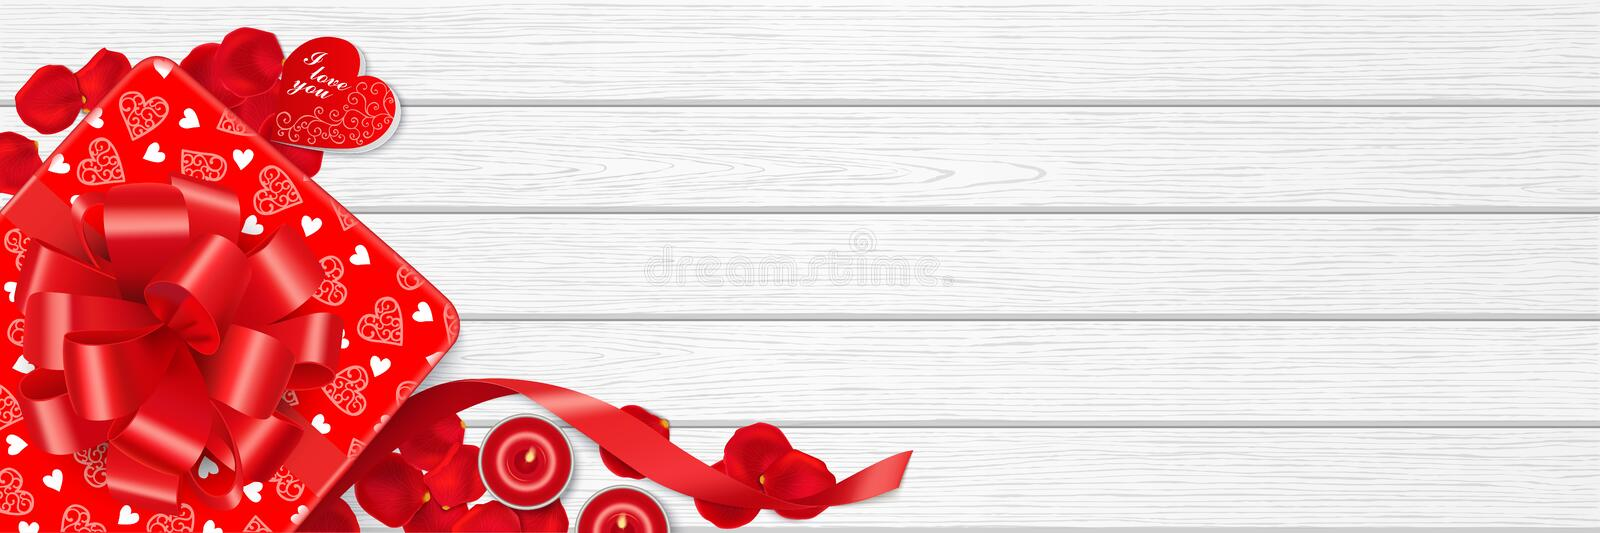 Valentines Day web banner with red gift boxes. Red gift box, rose petals, romantic candles and copy space on the white wooden table. Top view. Valentine`s Day royalty free illustration